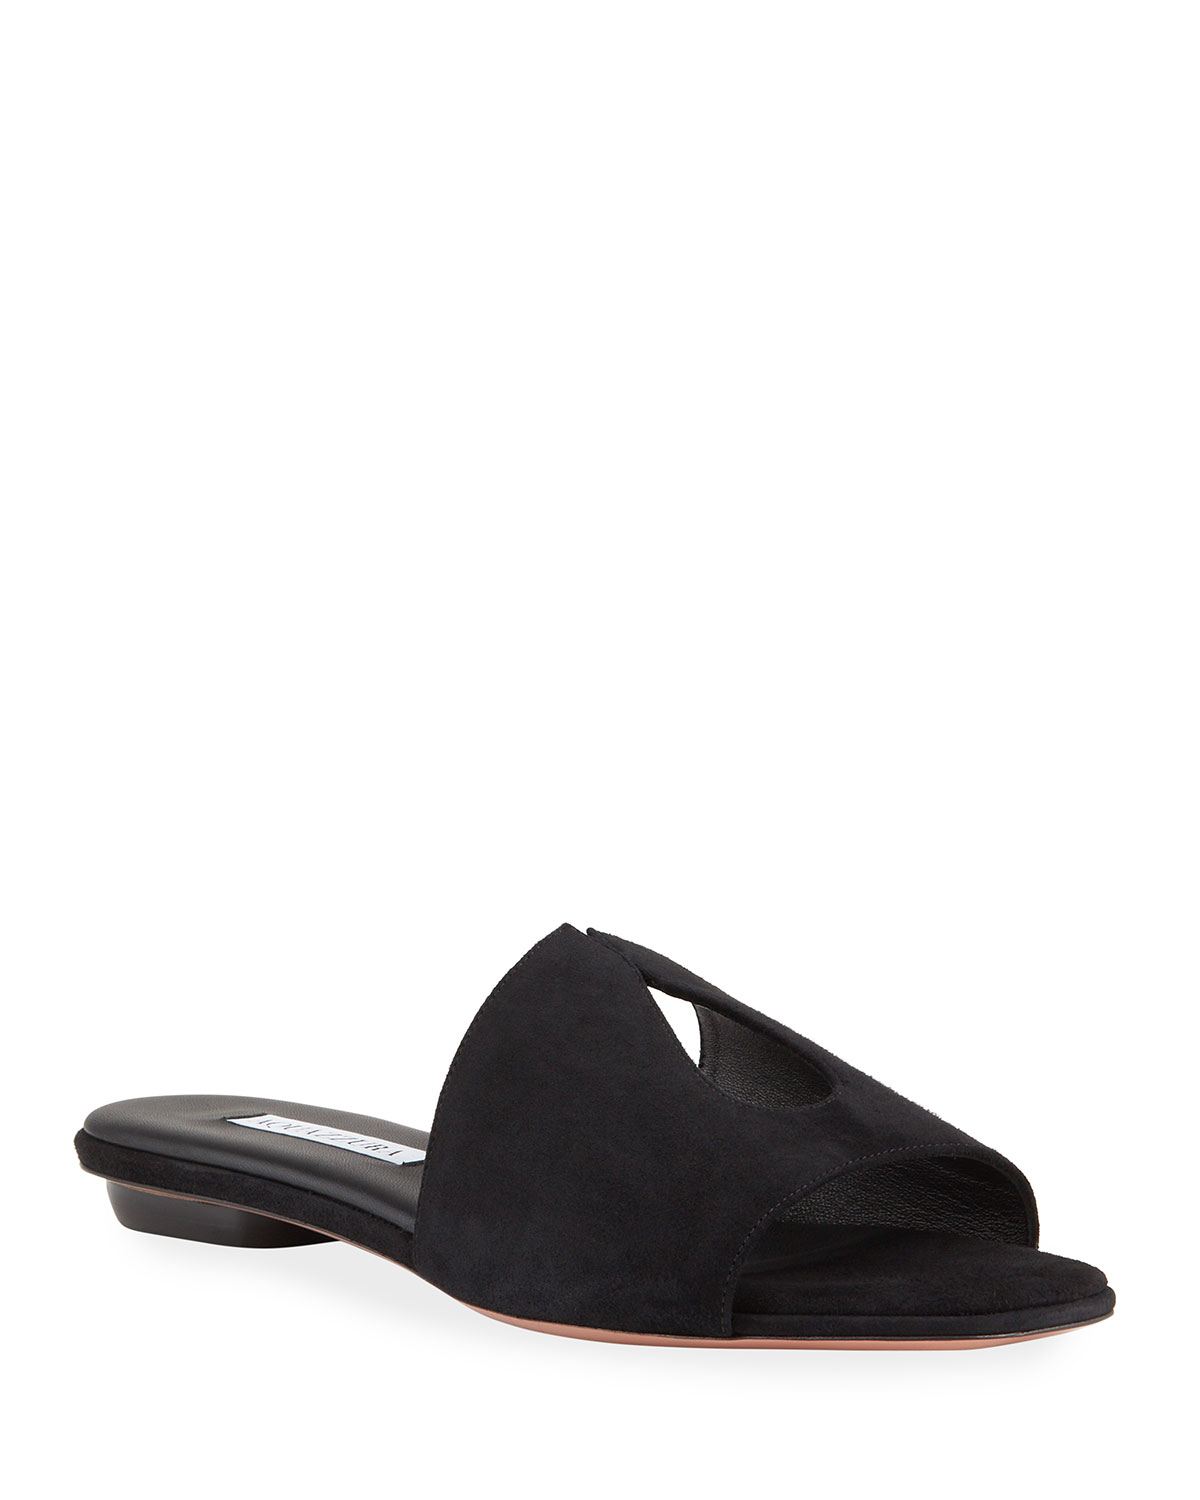 Sexy Thing Suede Slide Sandals